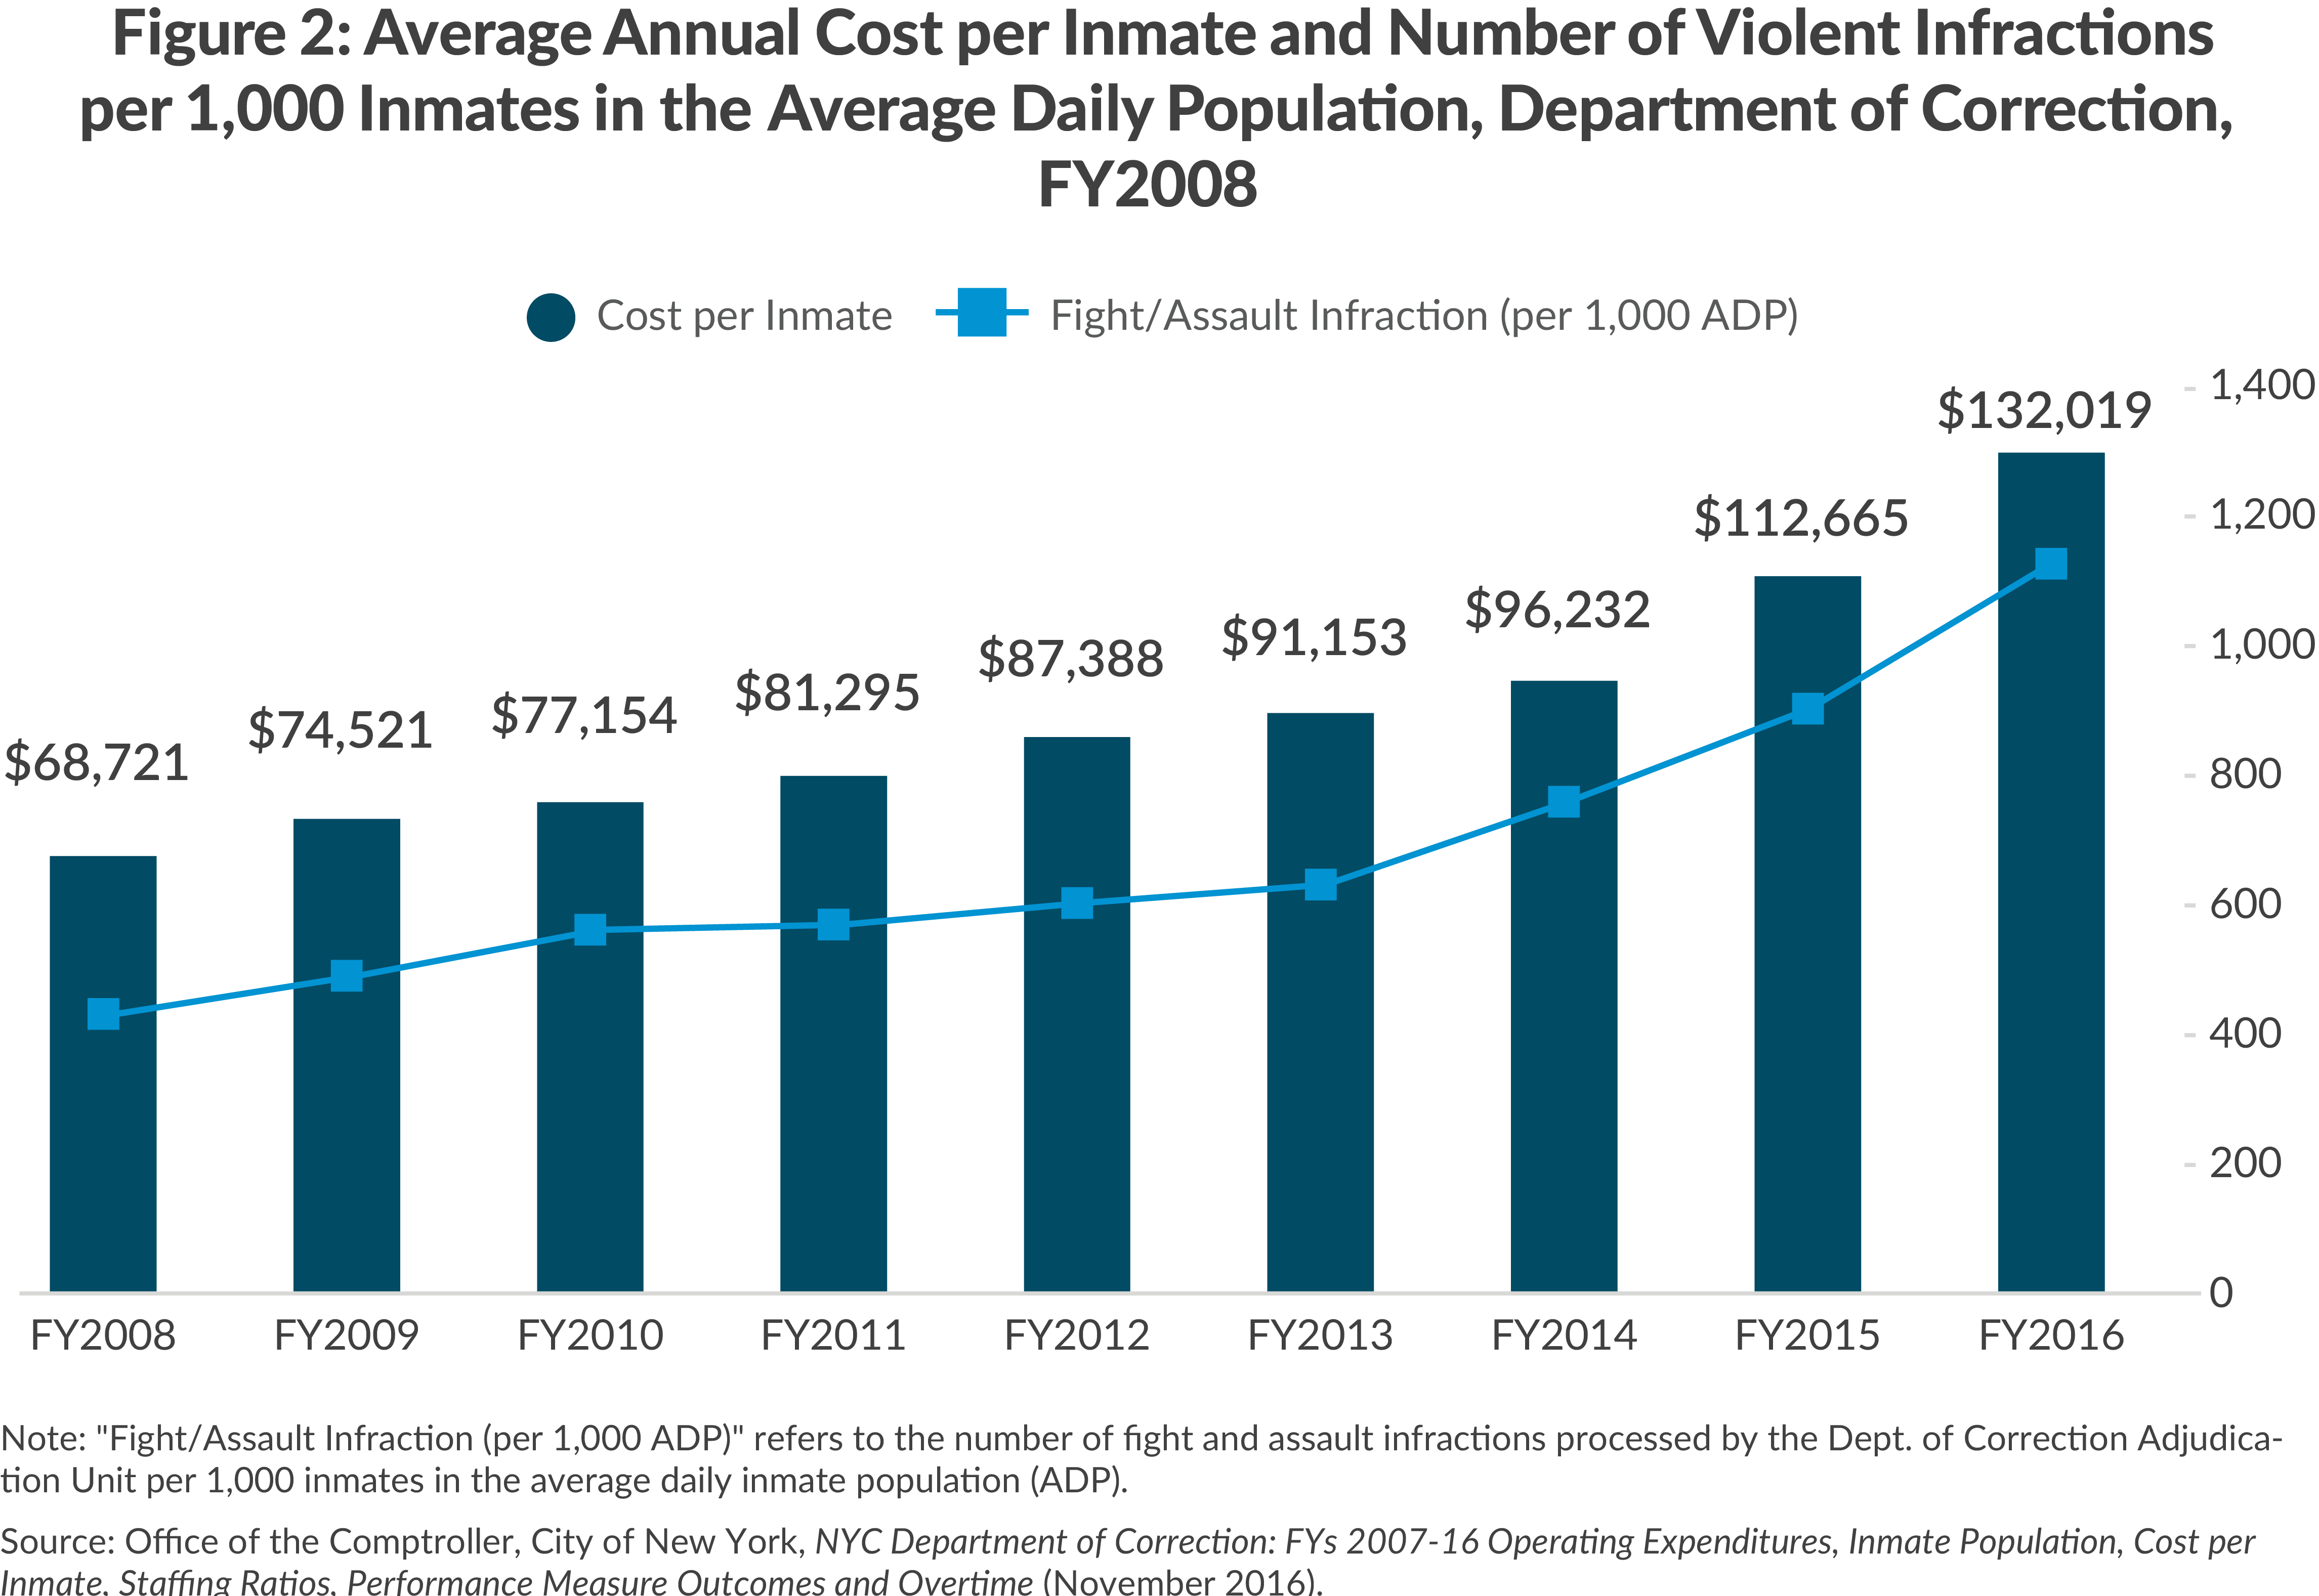 Figure 2: Average Annual Cost per Inmate and Number of Violent Infractions per 1,000 Inmates in the Average Daily Population, Department of Correction,  FY2008